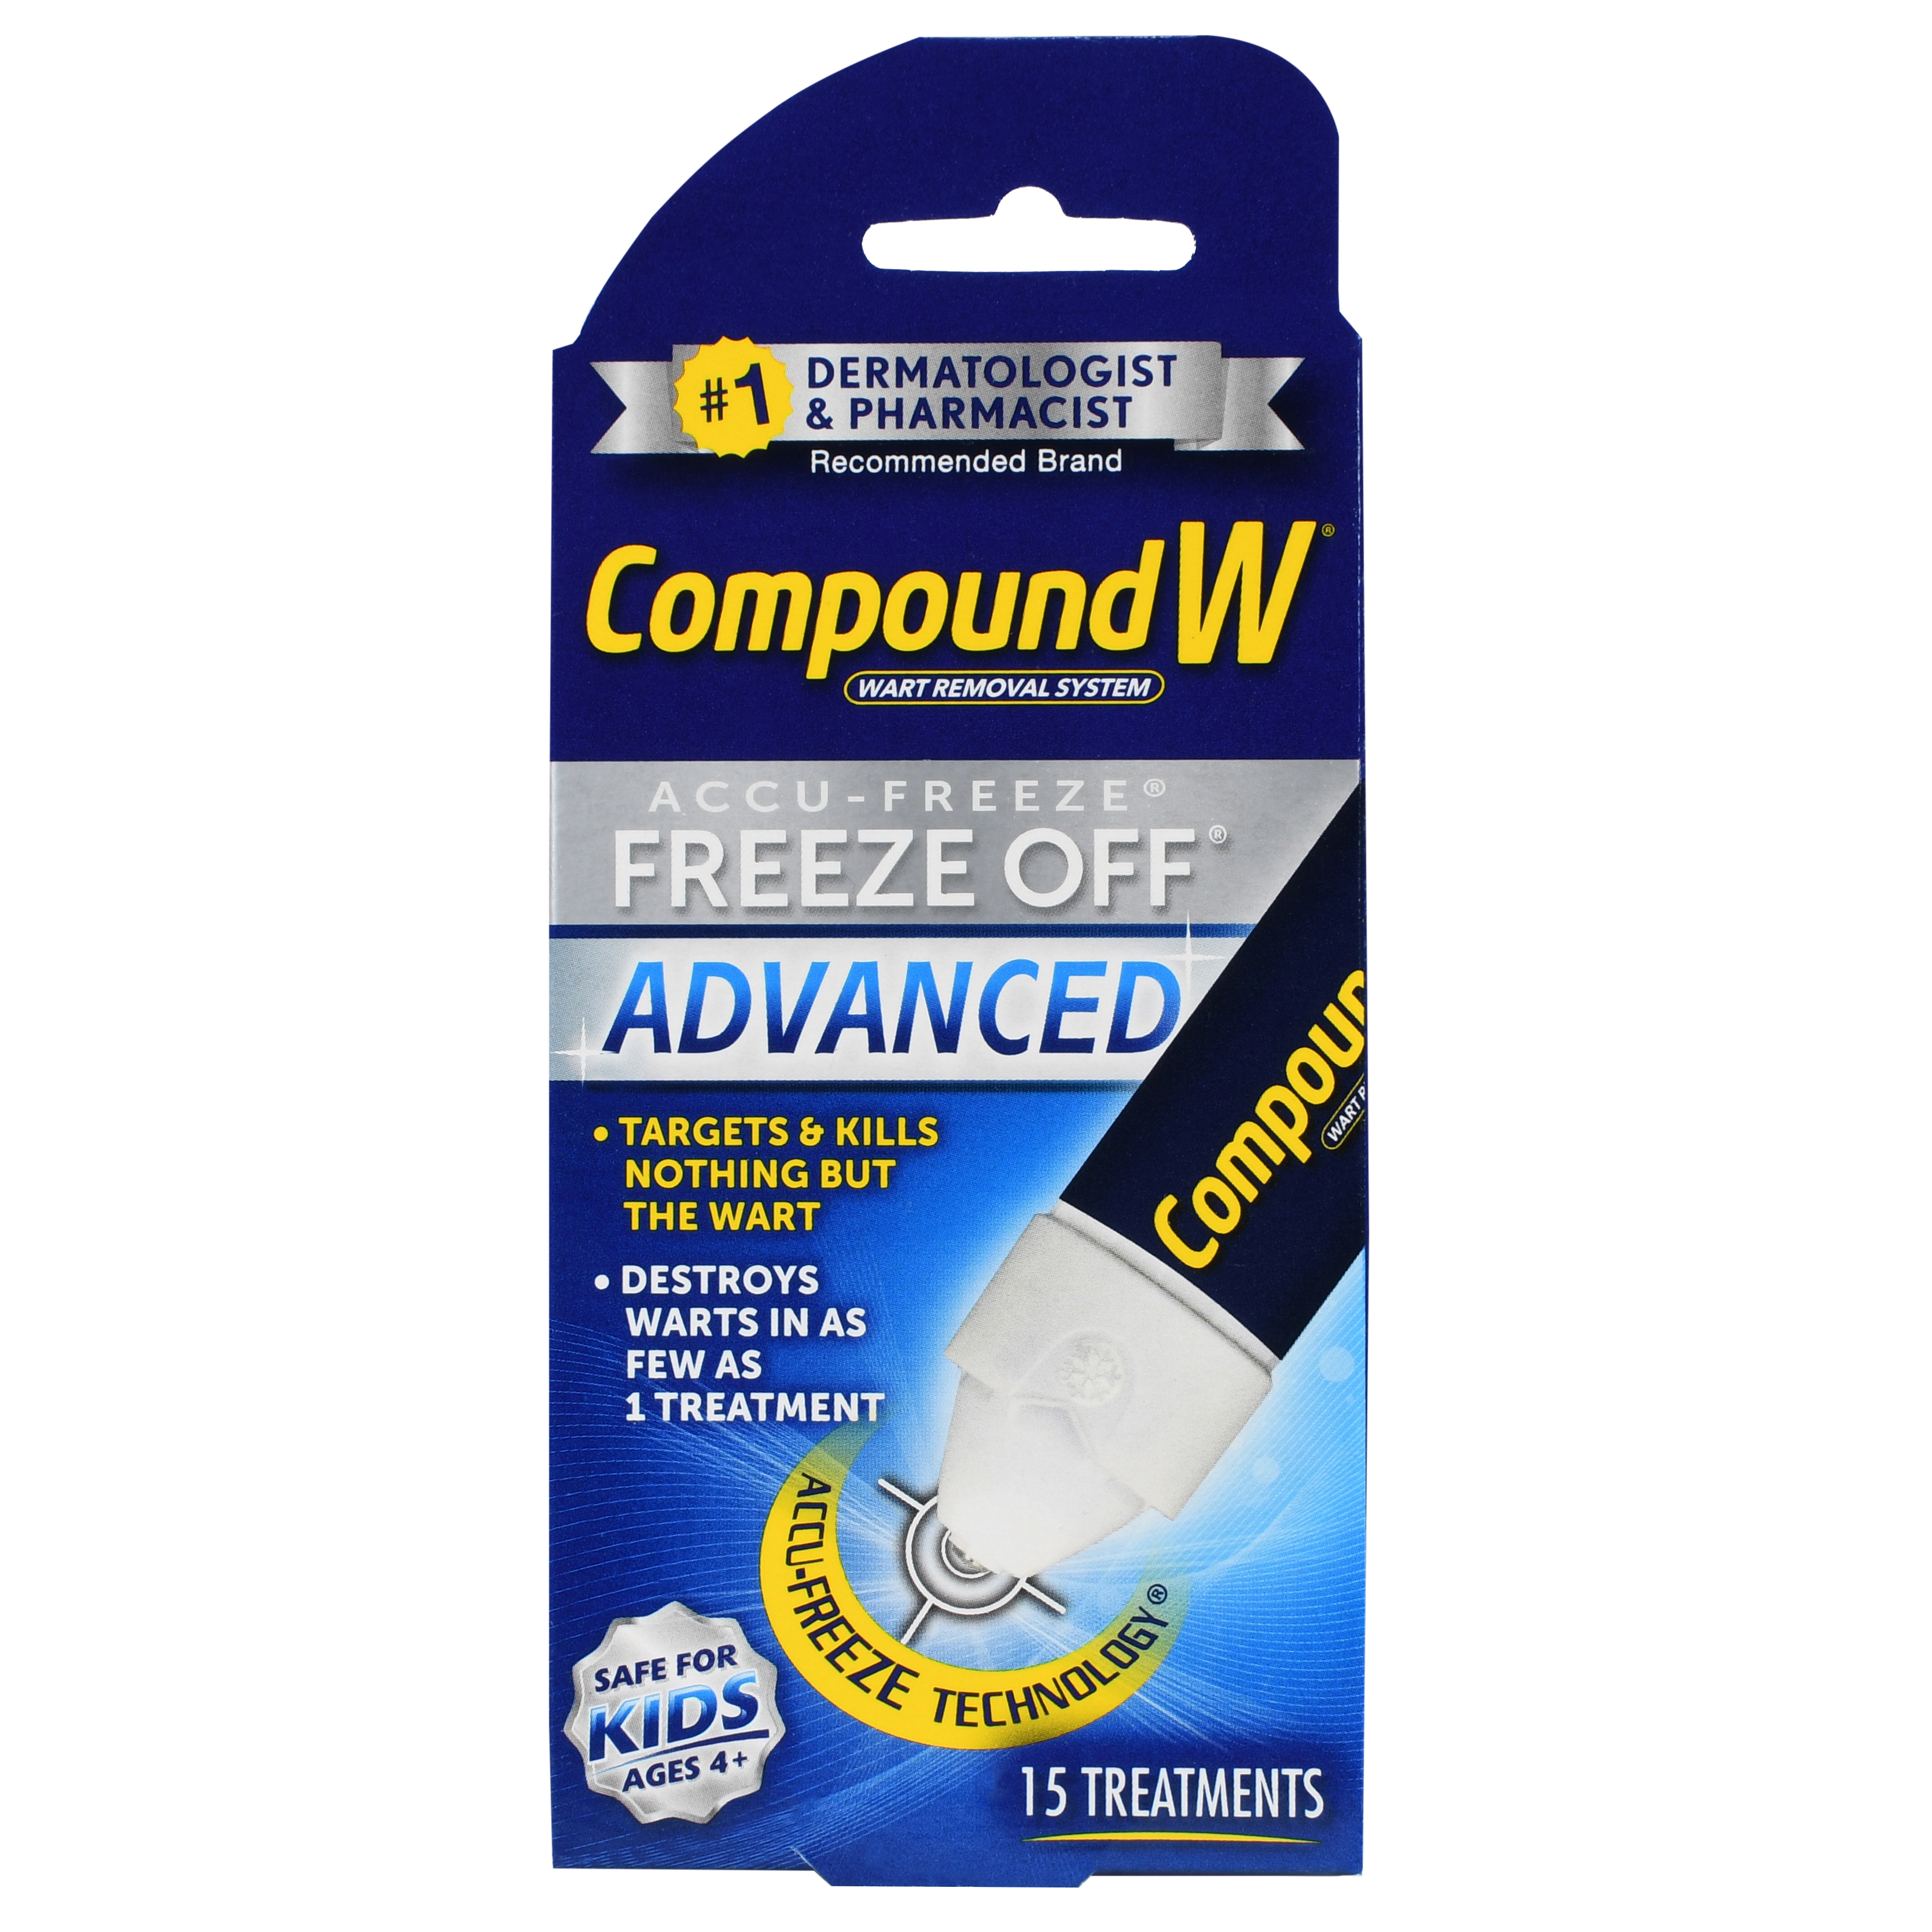 Compound W Wart Removal System Freeze Off Advanced Treatments - 15 CT